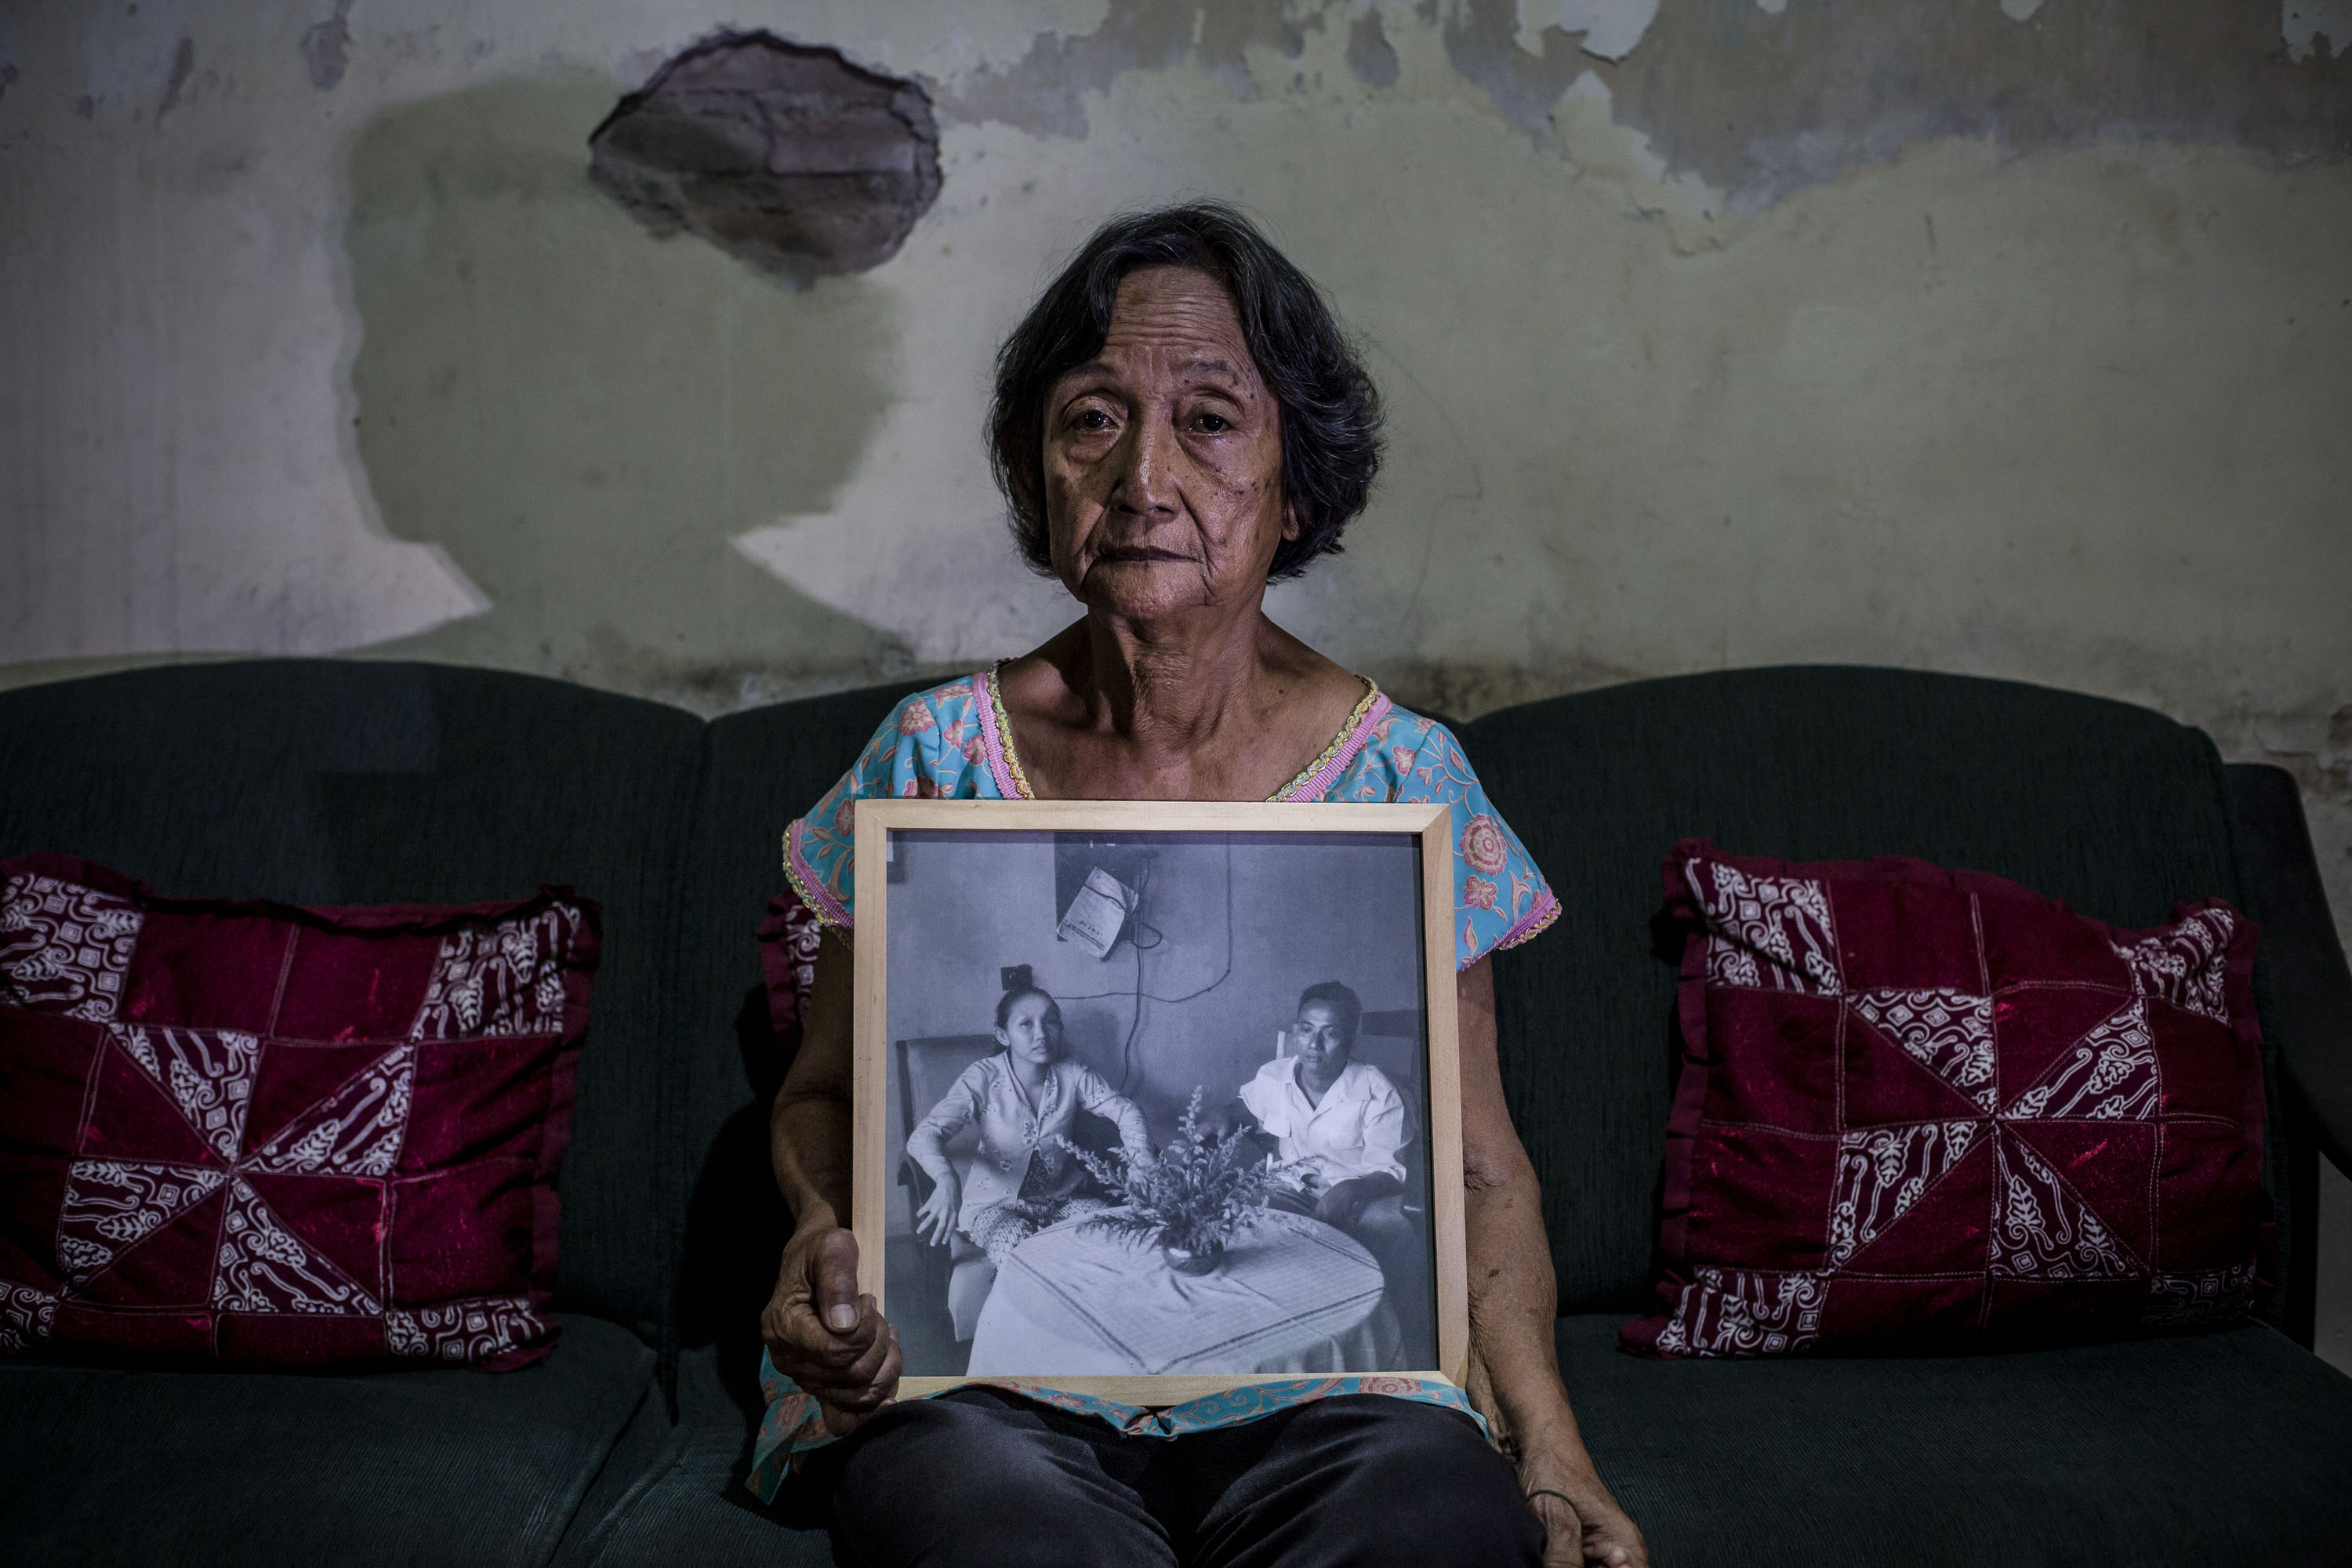 Sri Muhayati, 75, holds a photograph of her parents on May 6, 2016, in Yogyakarta, Indonesia. Sri spent five years imprisoned without trial for suspected ties to the Indonesian Communist Party